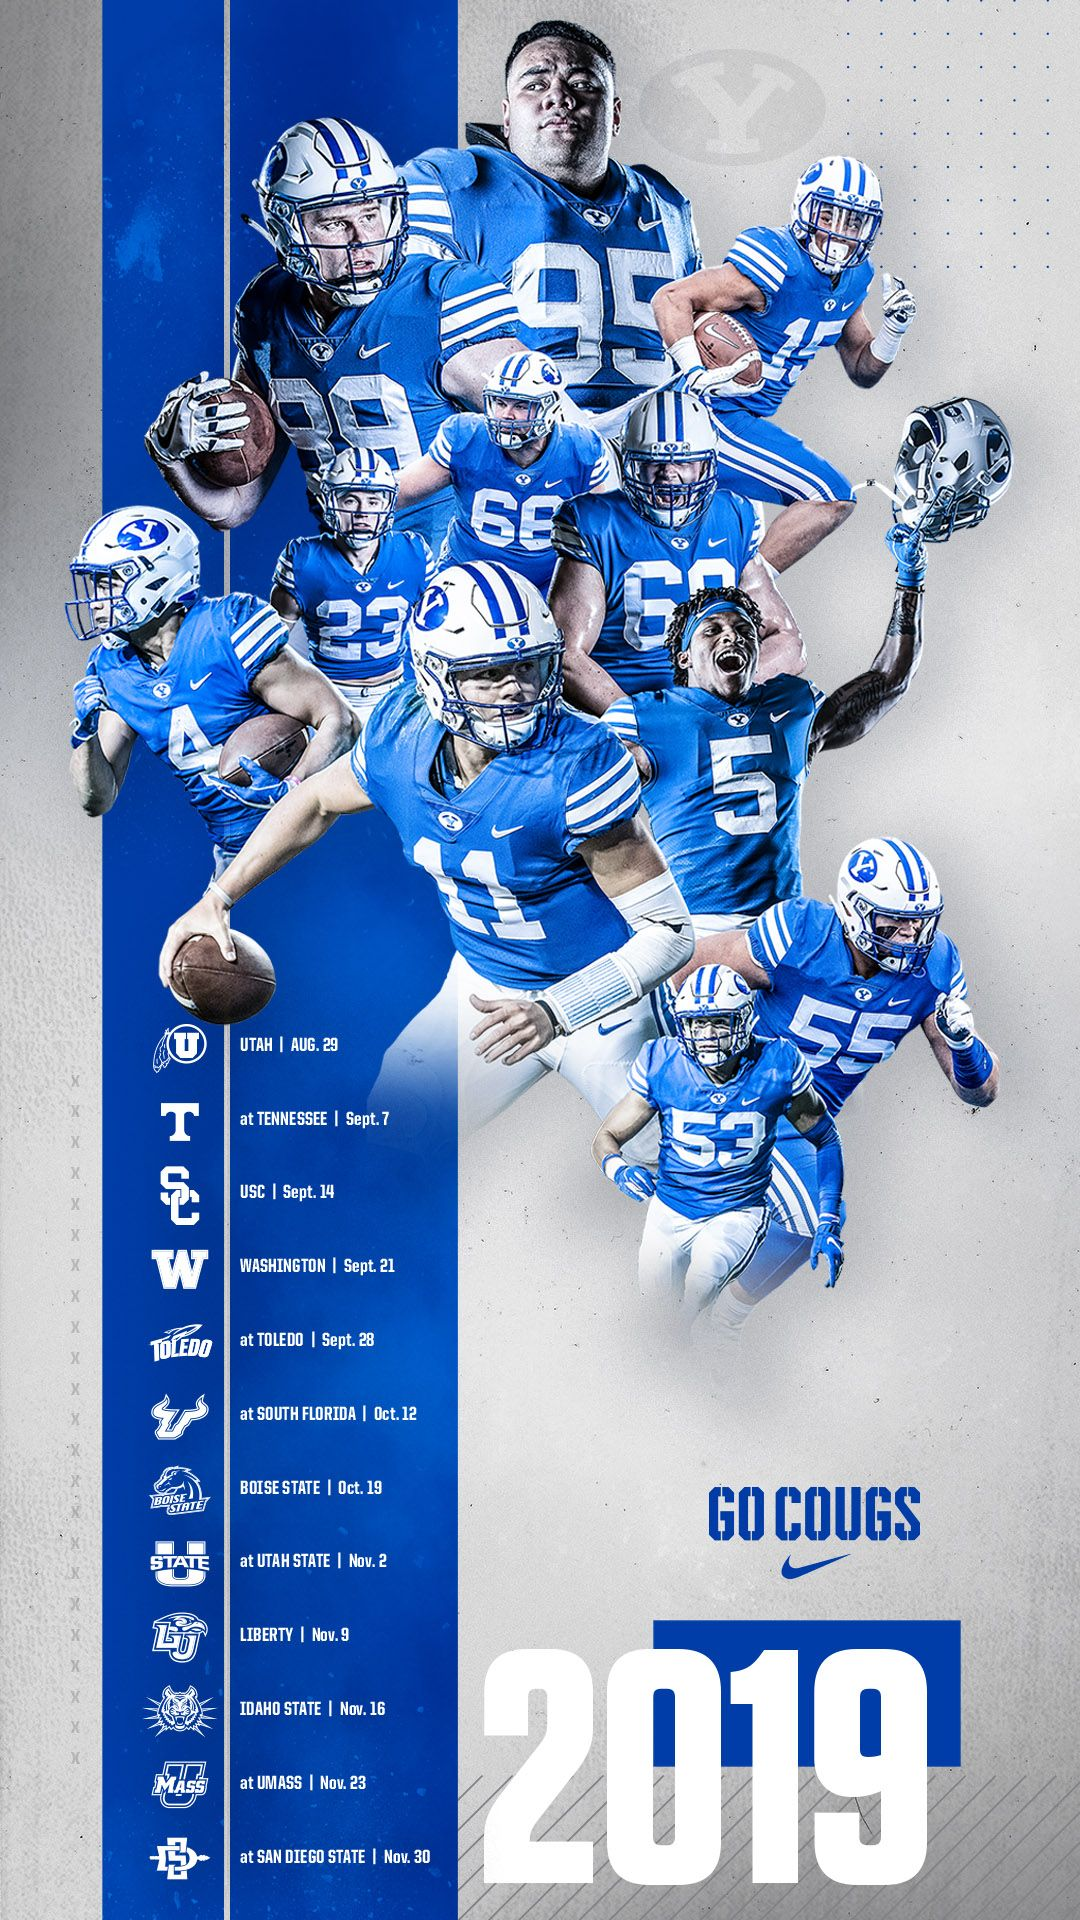 Byu Football Poster 2019 Byu Football Football Poster Football Wallpaper